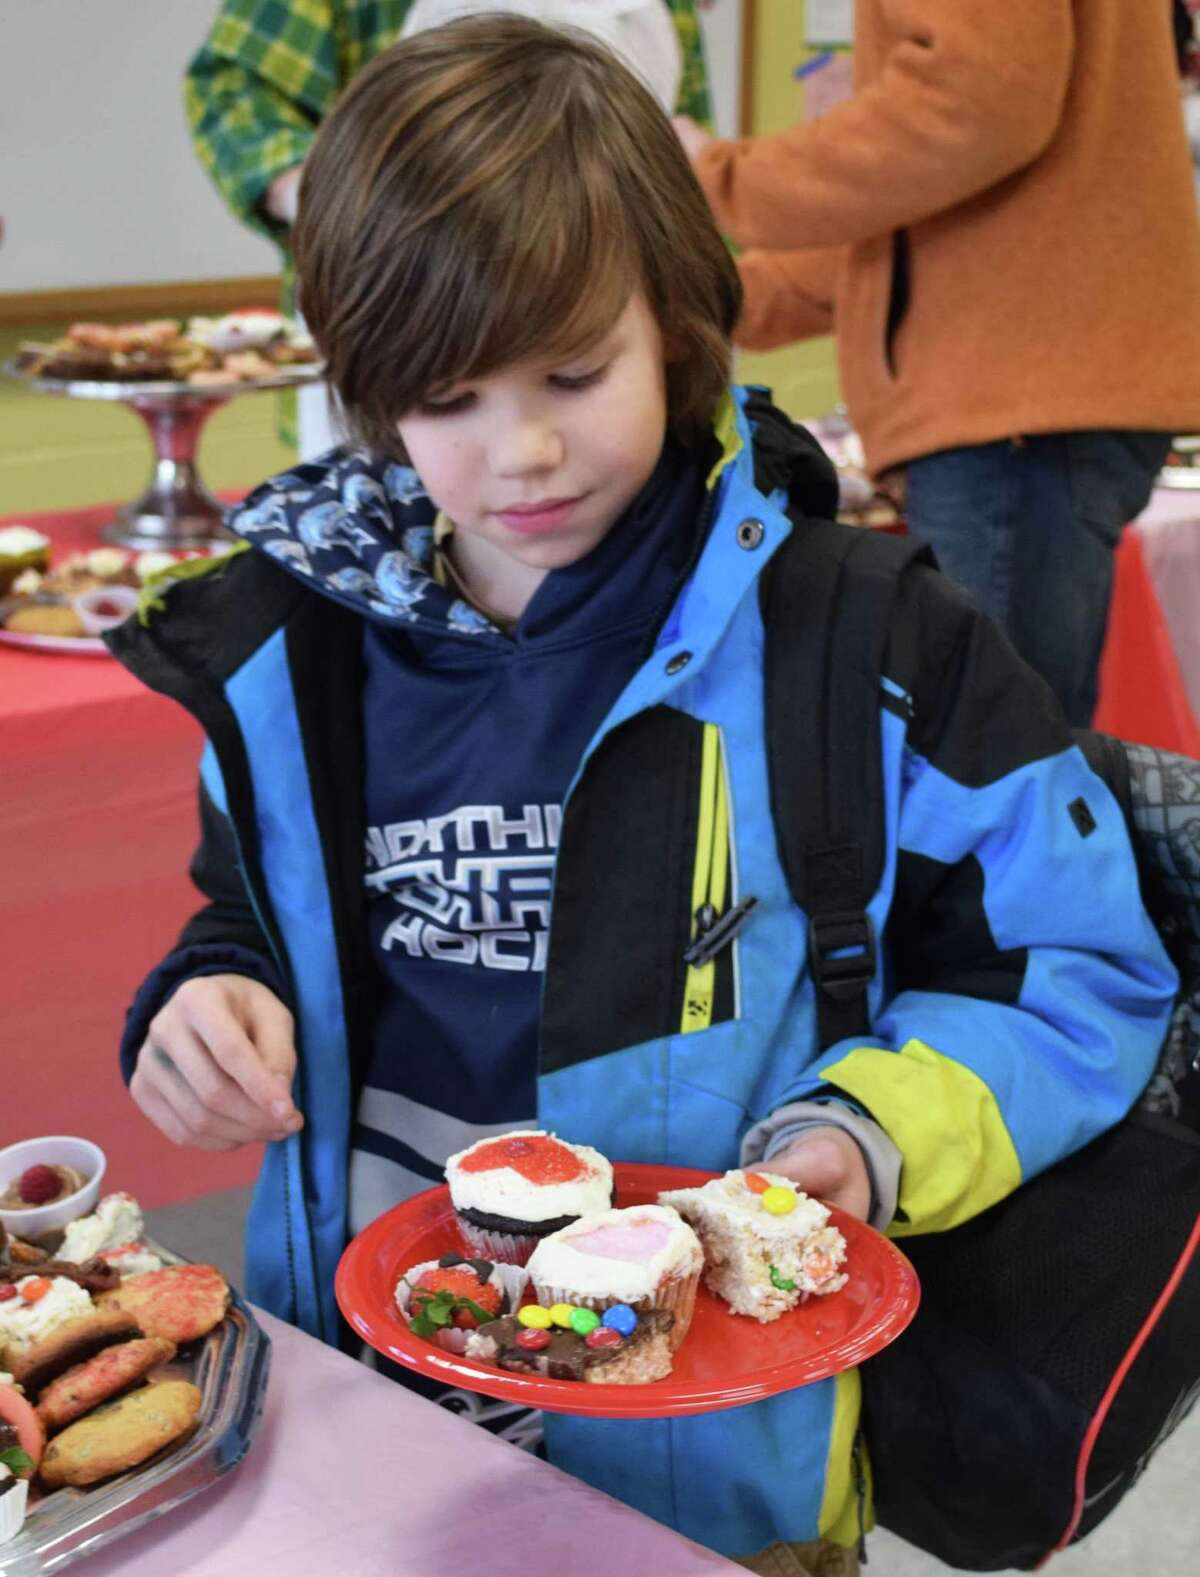 Spectrum/As first in line at the Kent Center School's Scholarship Fund's 23rd annual Chocolate Fest, Chase Harrington, who turned 10 Feb. 10, 2018, appears pleased with his selection of treats at the FEb. 8, 2018 event.